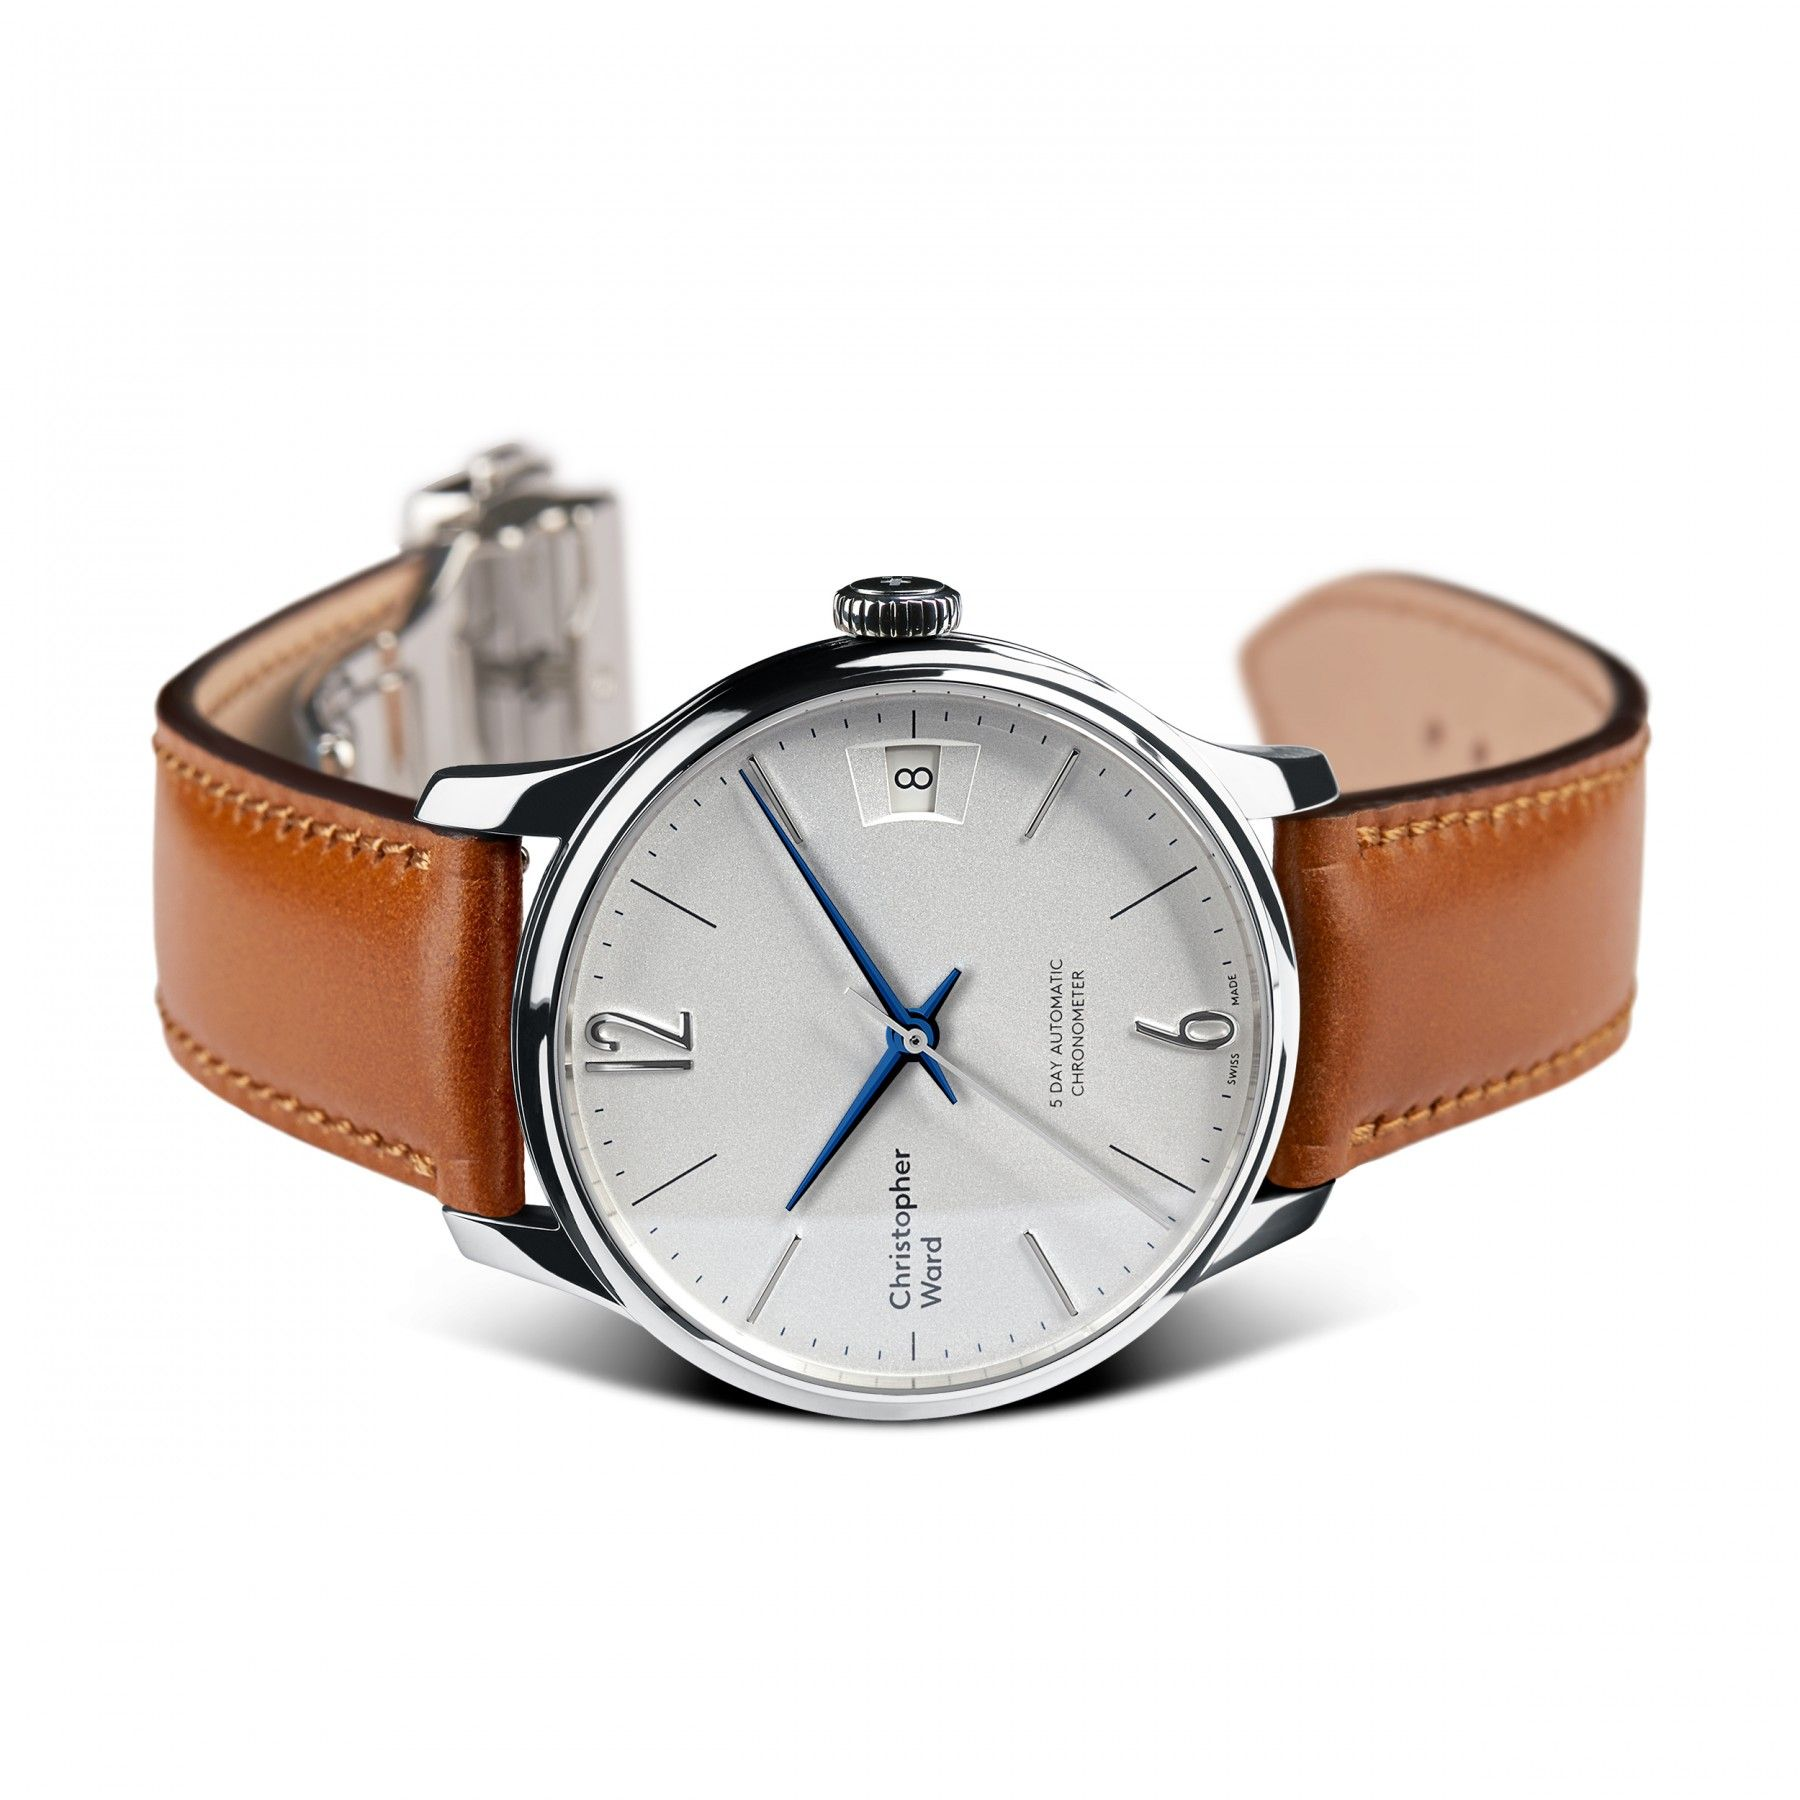 C grand malvern day automatic by christopher ward reloj